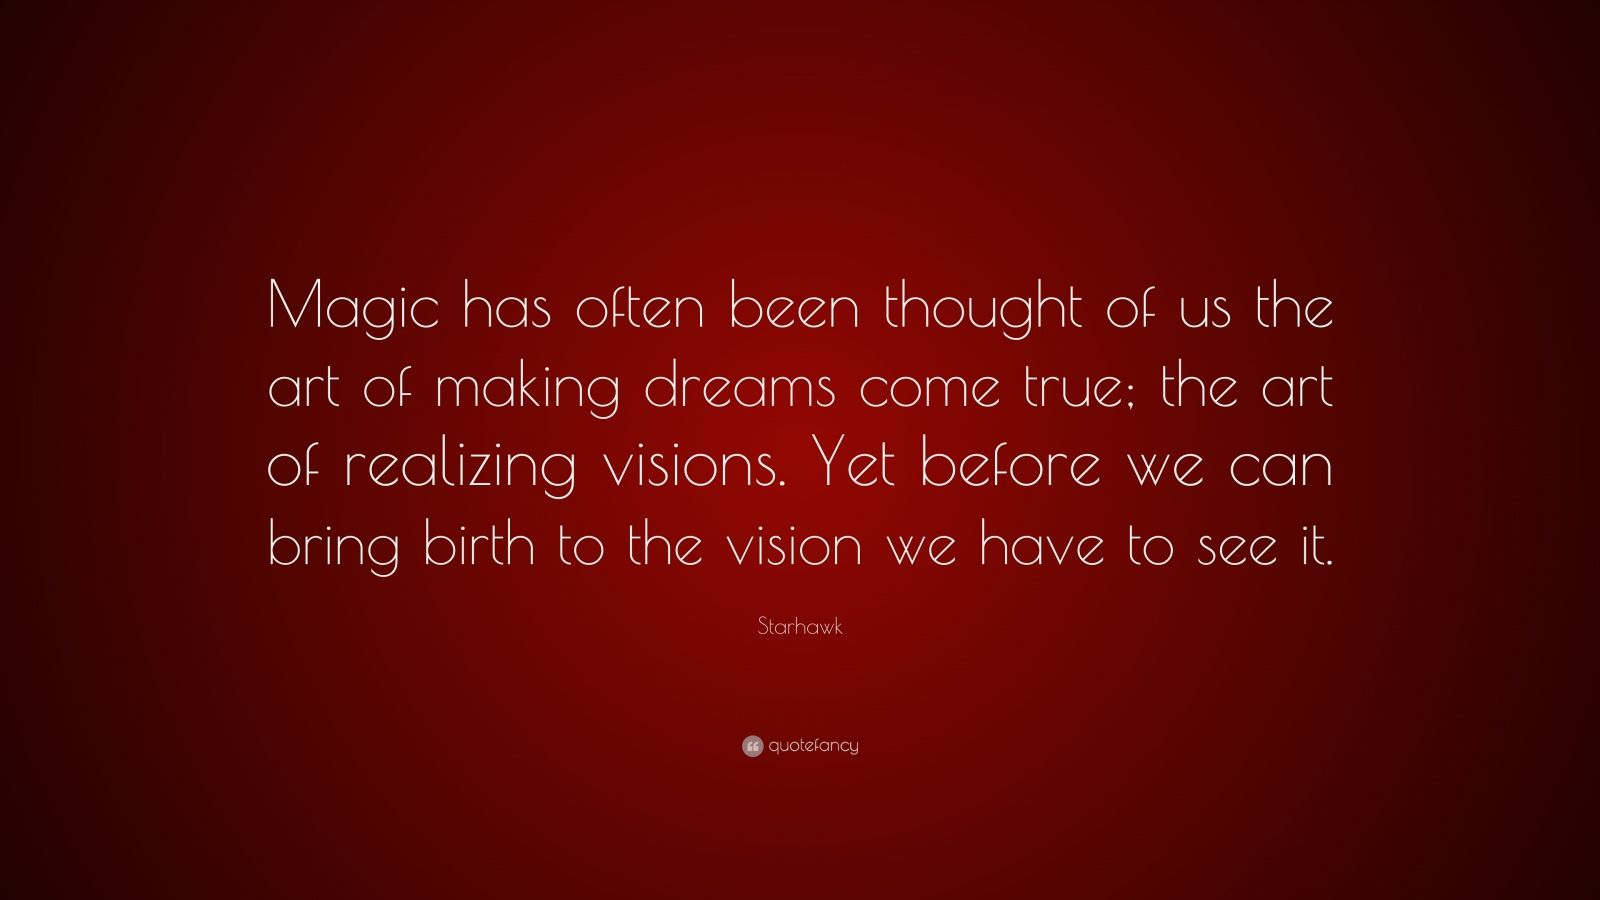 """Starhawk Quote: """"Magic has often been thought of us the art of making dreams come true; the art of realizing visions. Yet before we can bring birth to the vision we have to see it."""""""